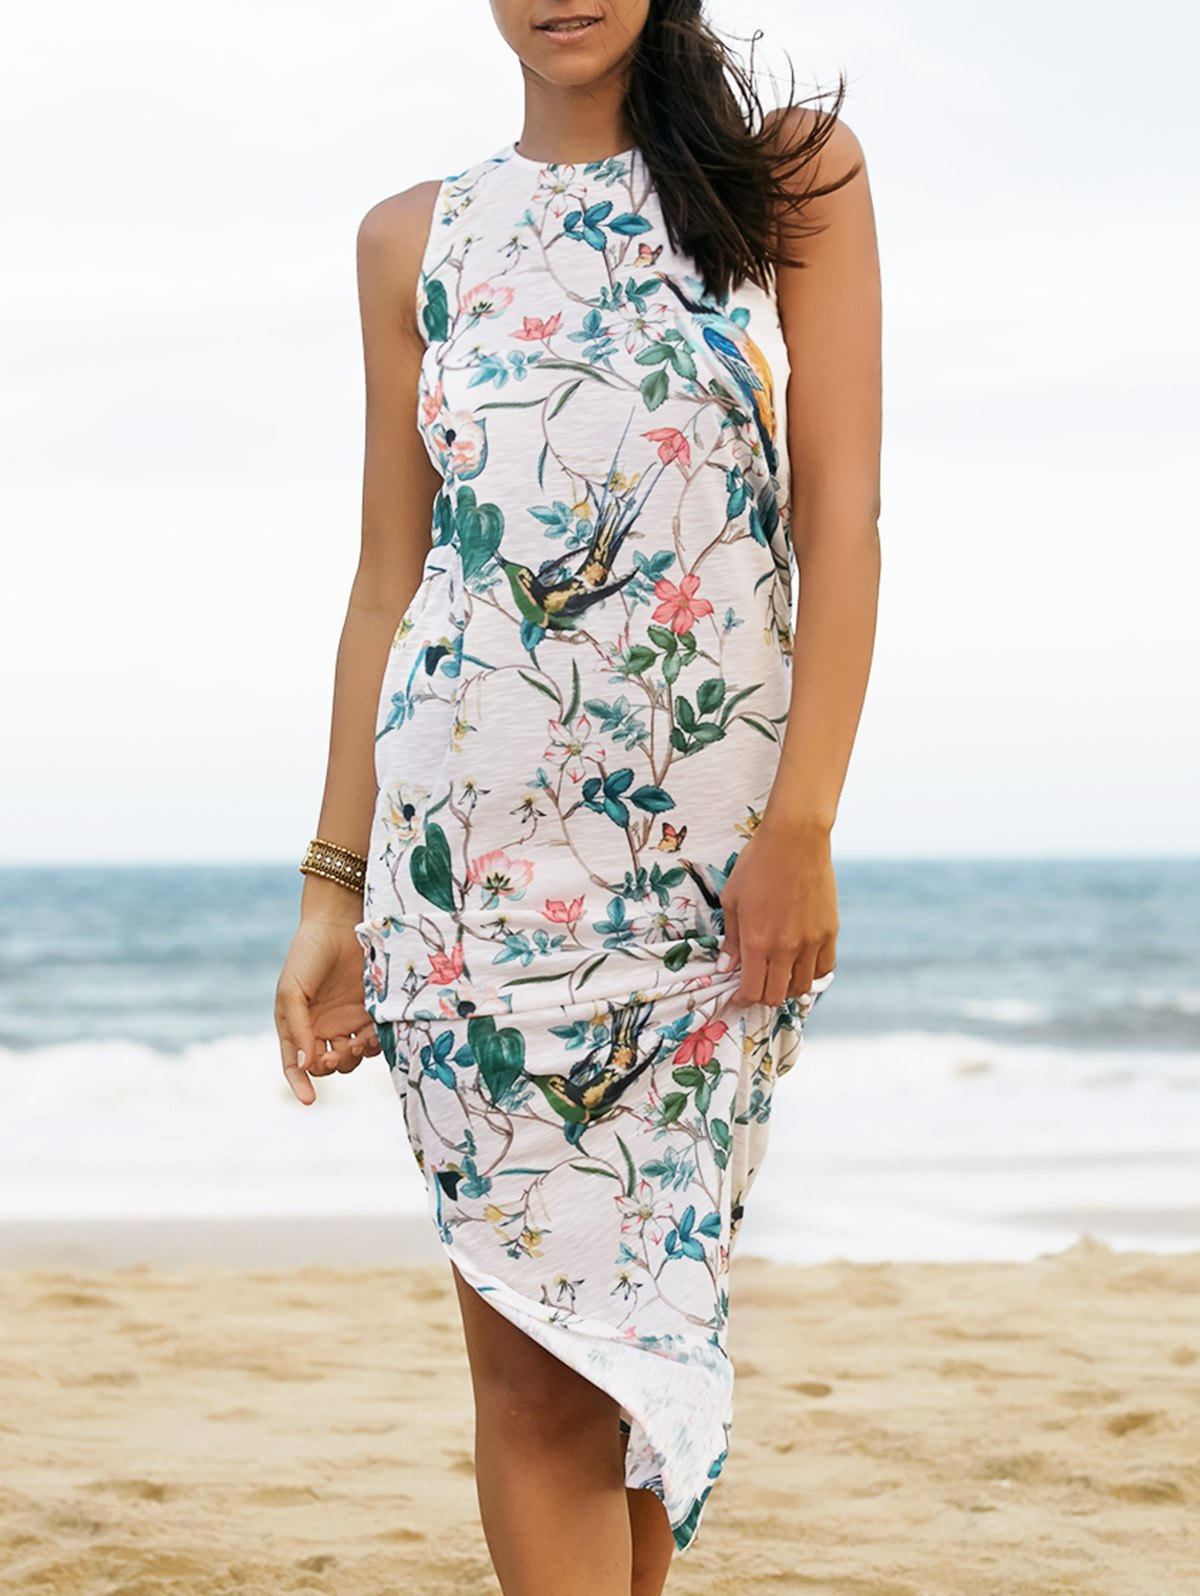 Floral and Bird Print Dress